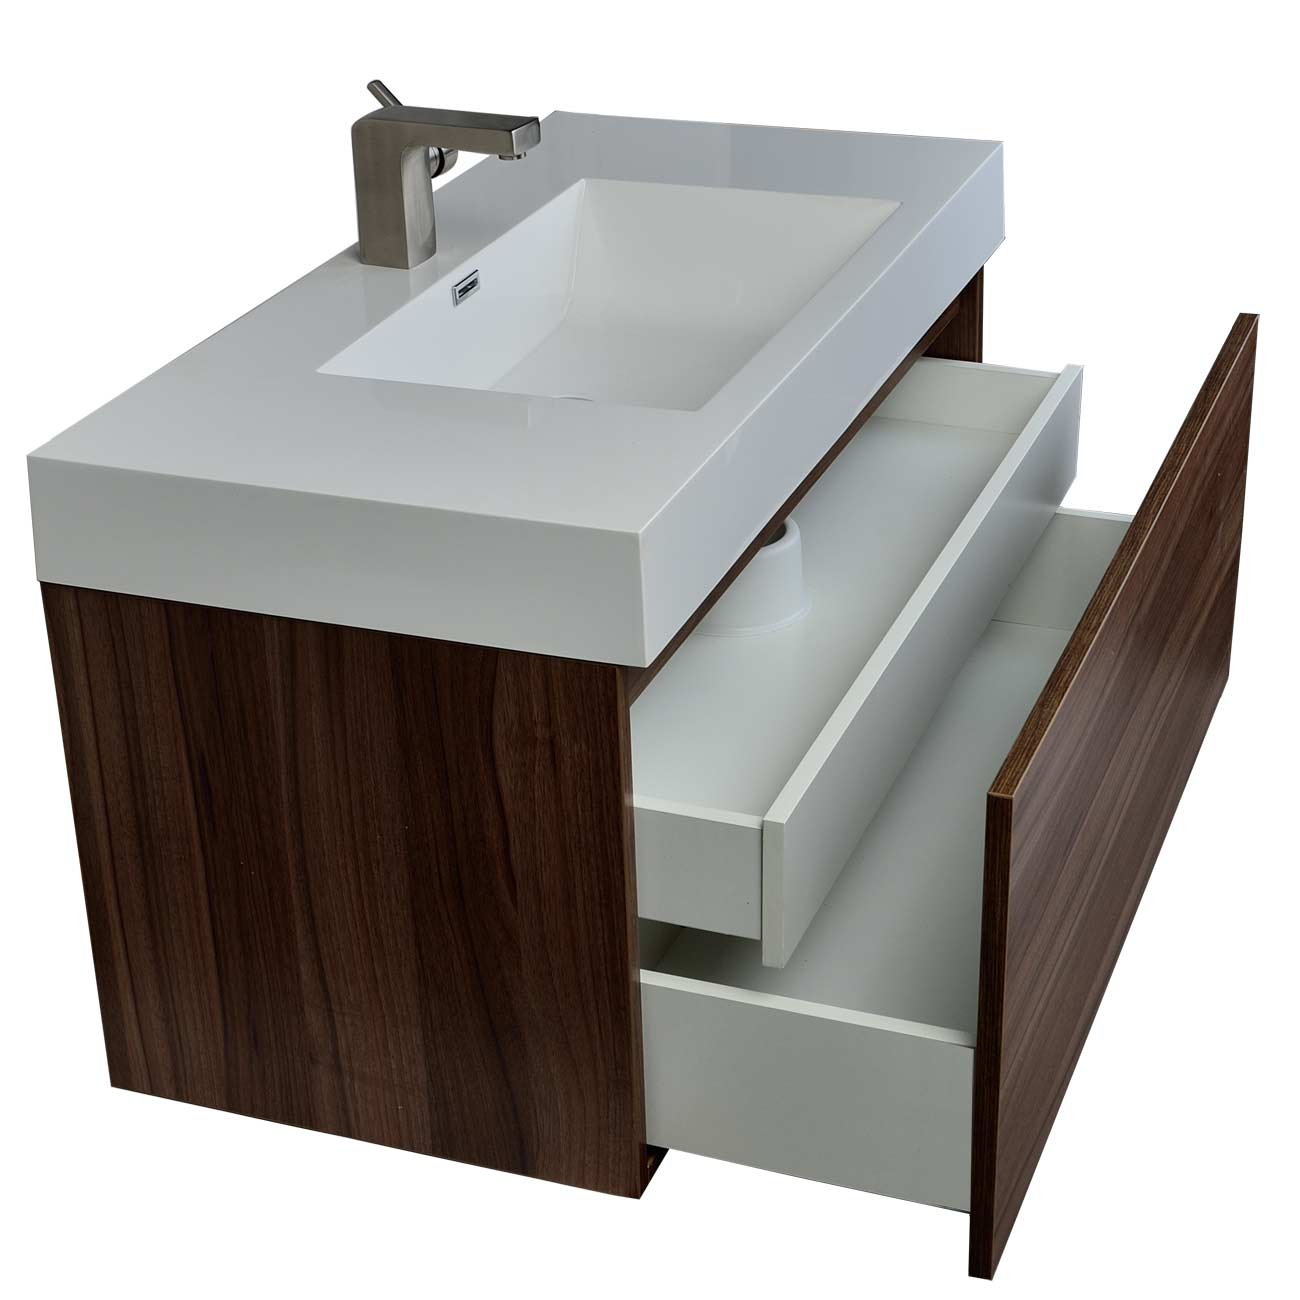 ^ Bathroom Vanities Bay rea alifornia. variety of bathroom ...